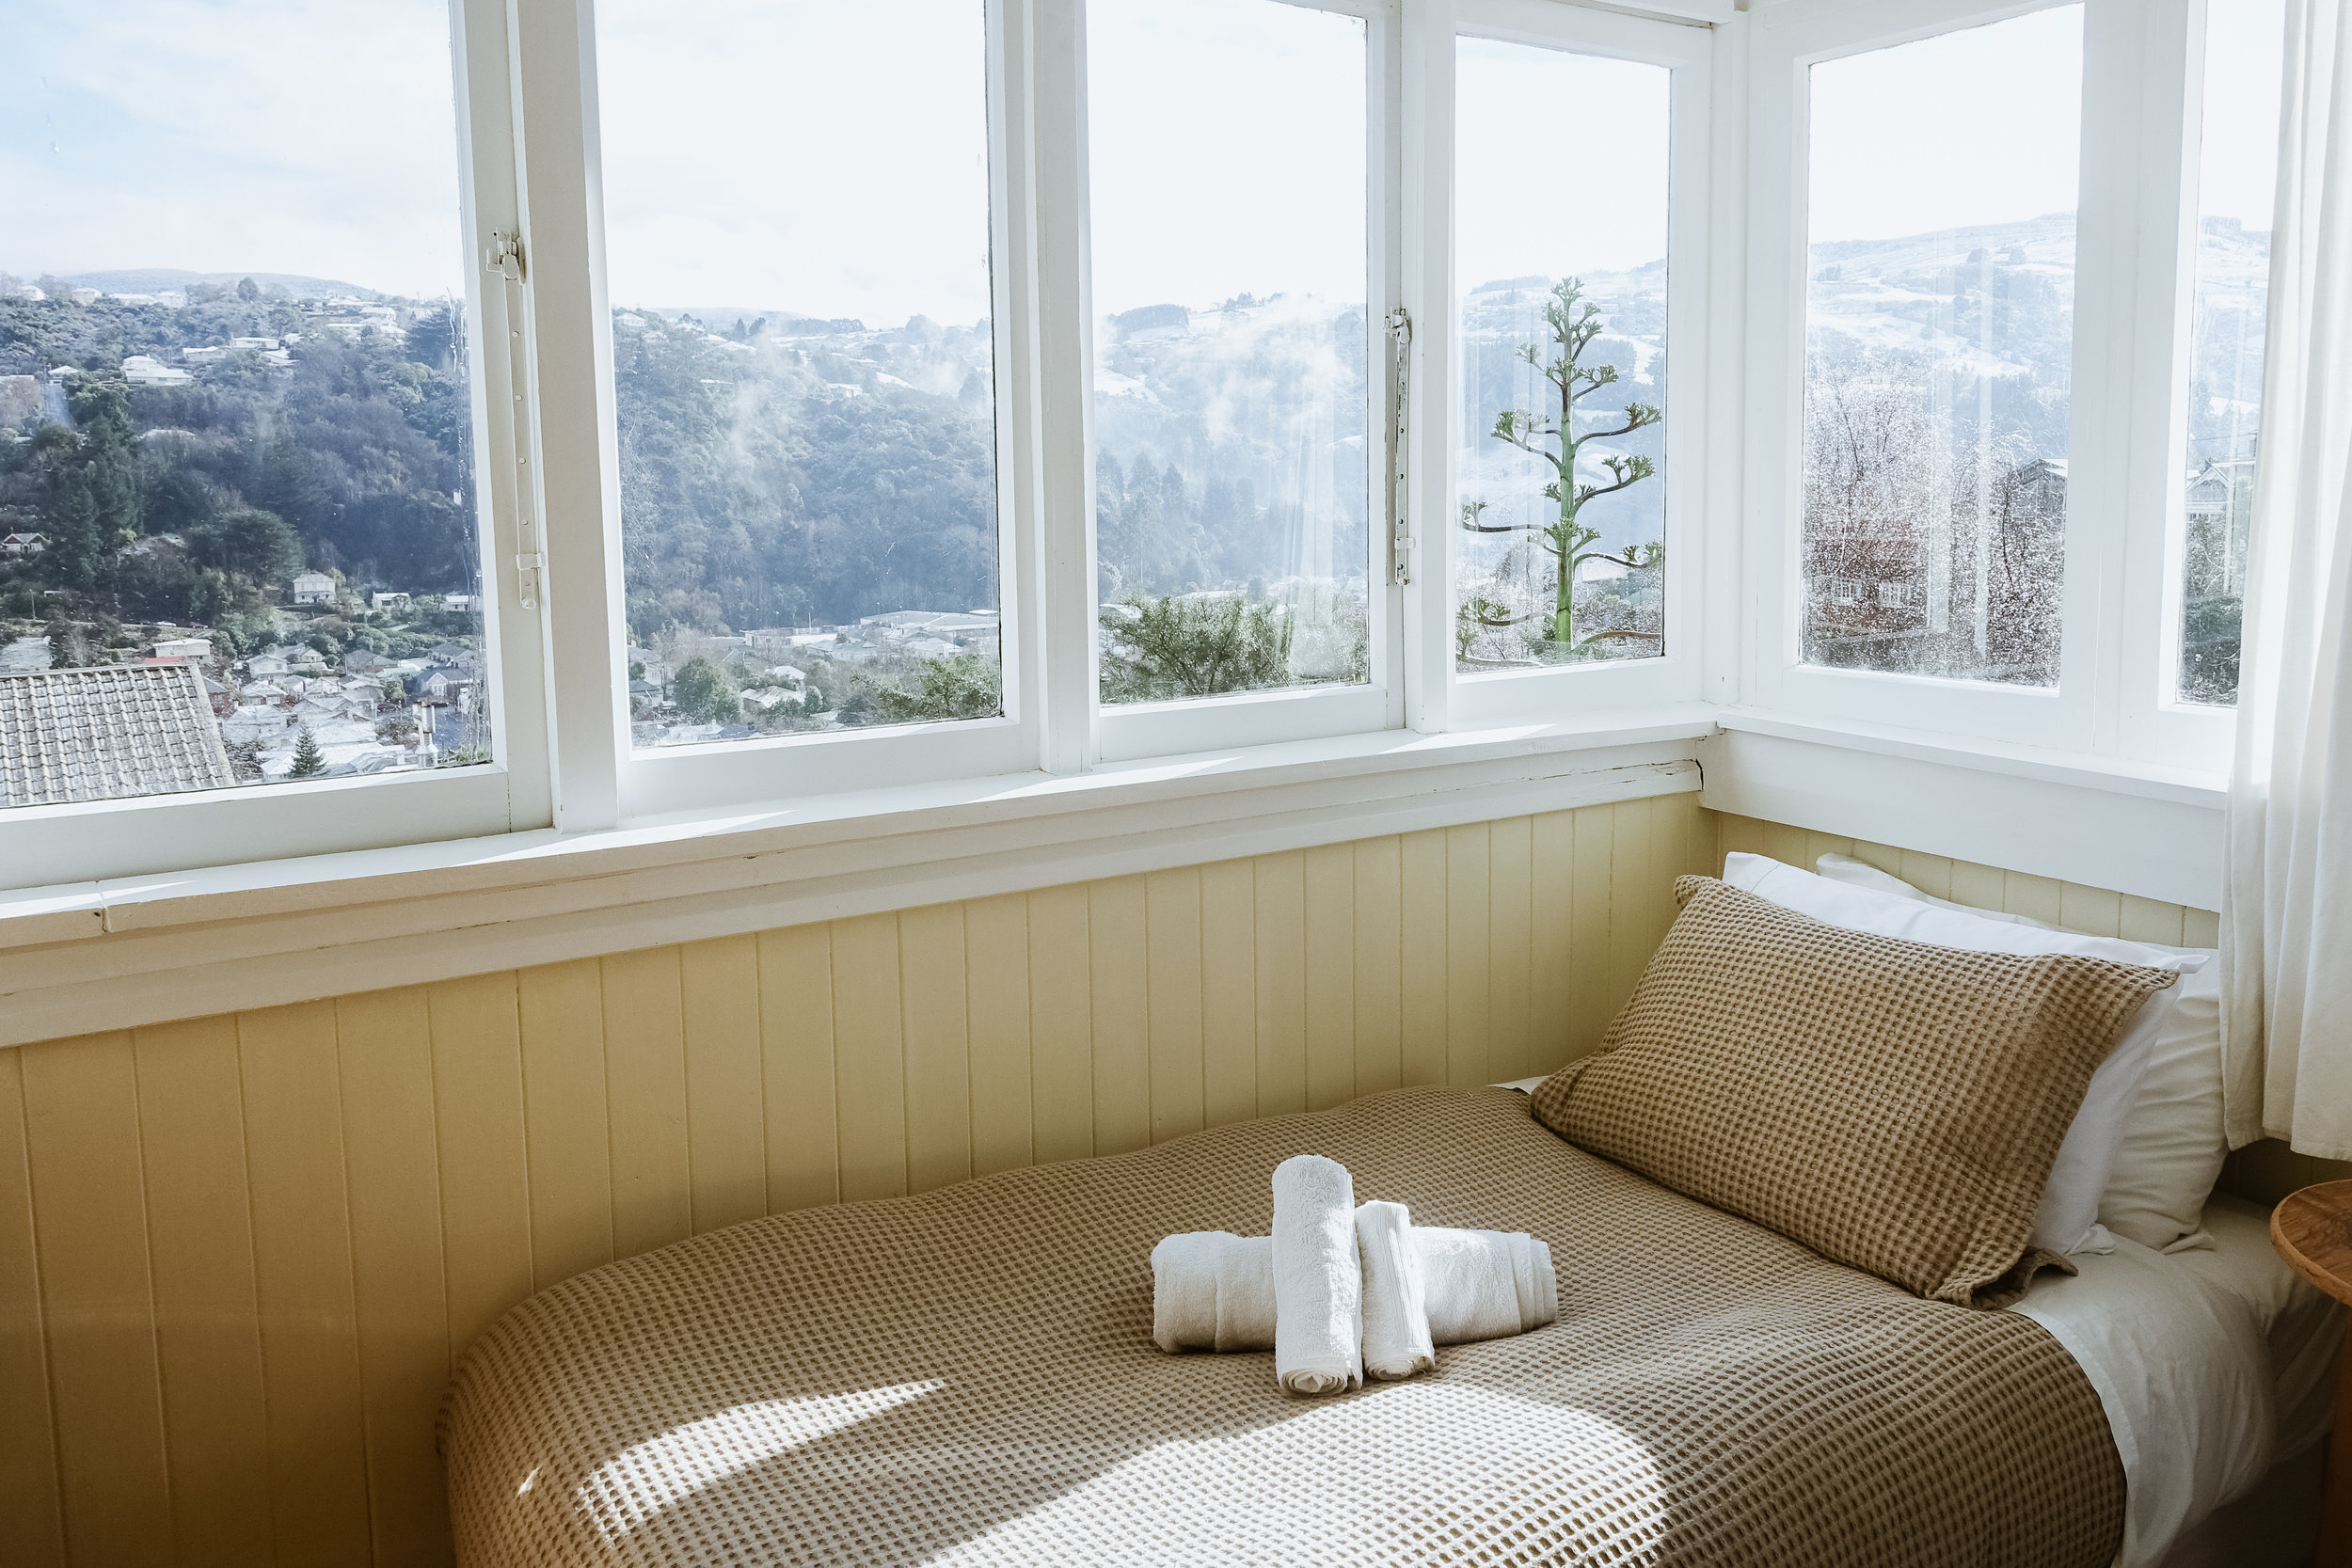 Gorgeous views overlooking the valley at Arden Street House